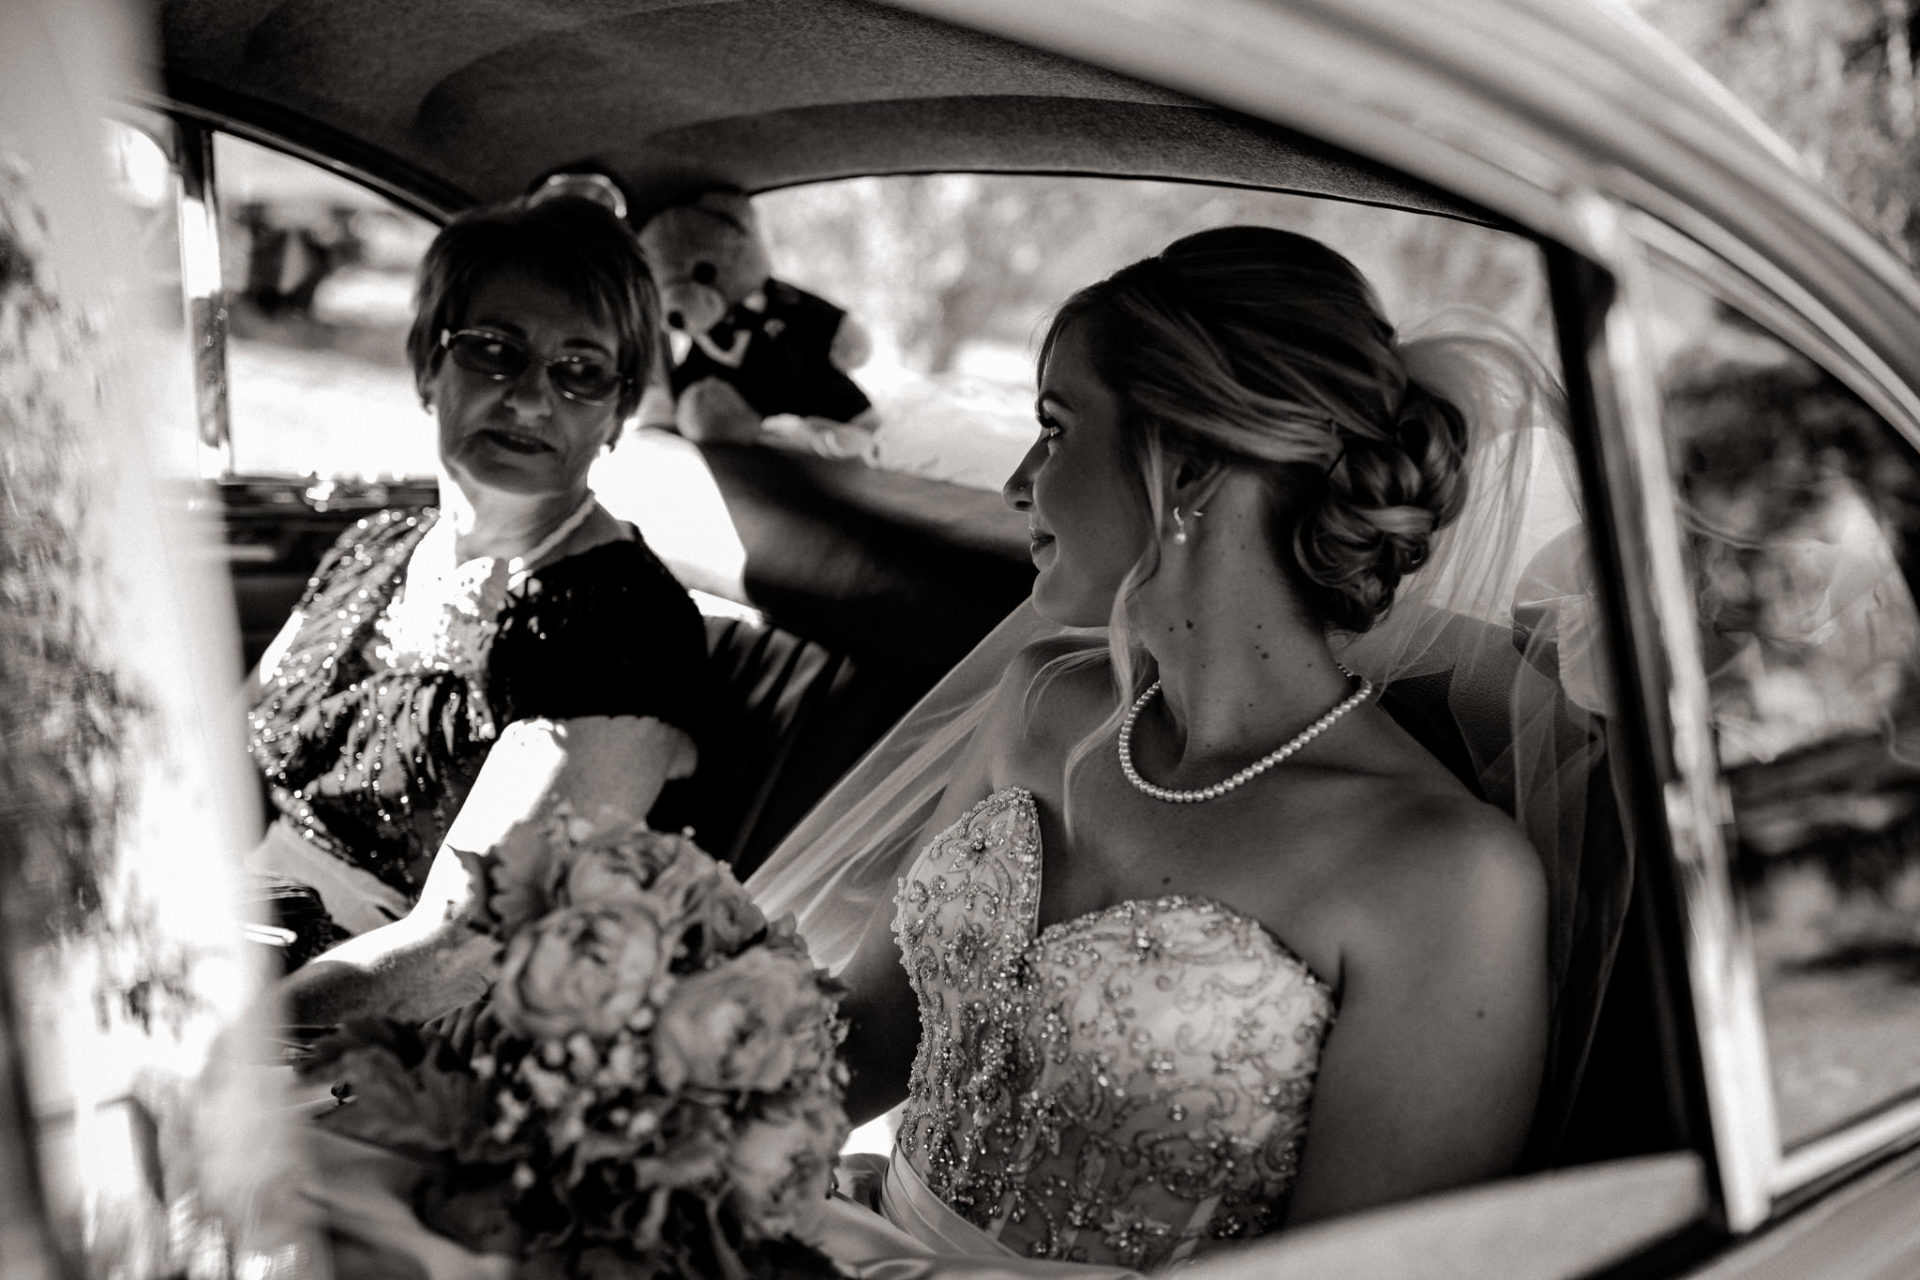 backyard-wedding-australia-melbourne-ceremony-bride-getting-out-of-classic-car-grandma